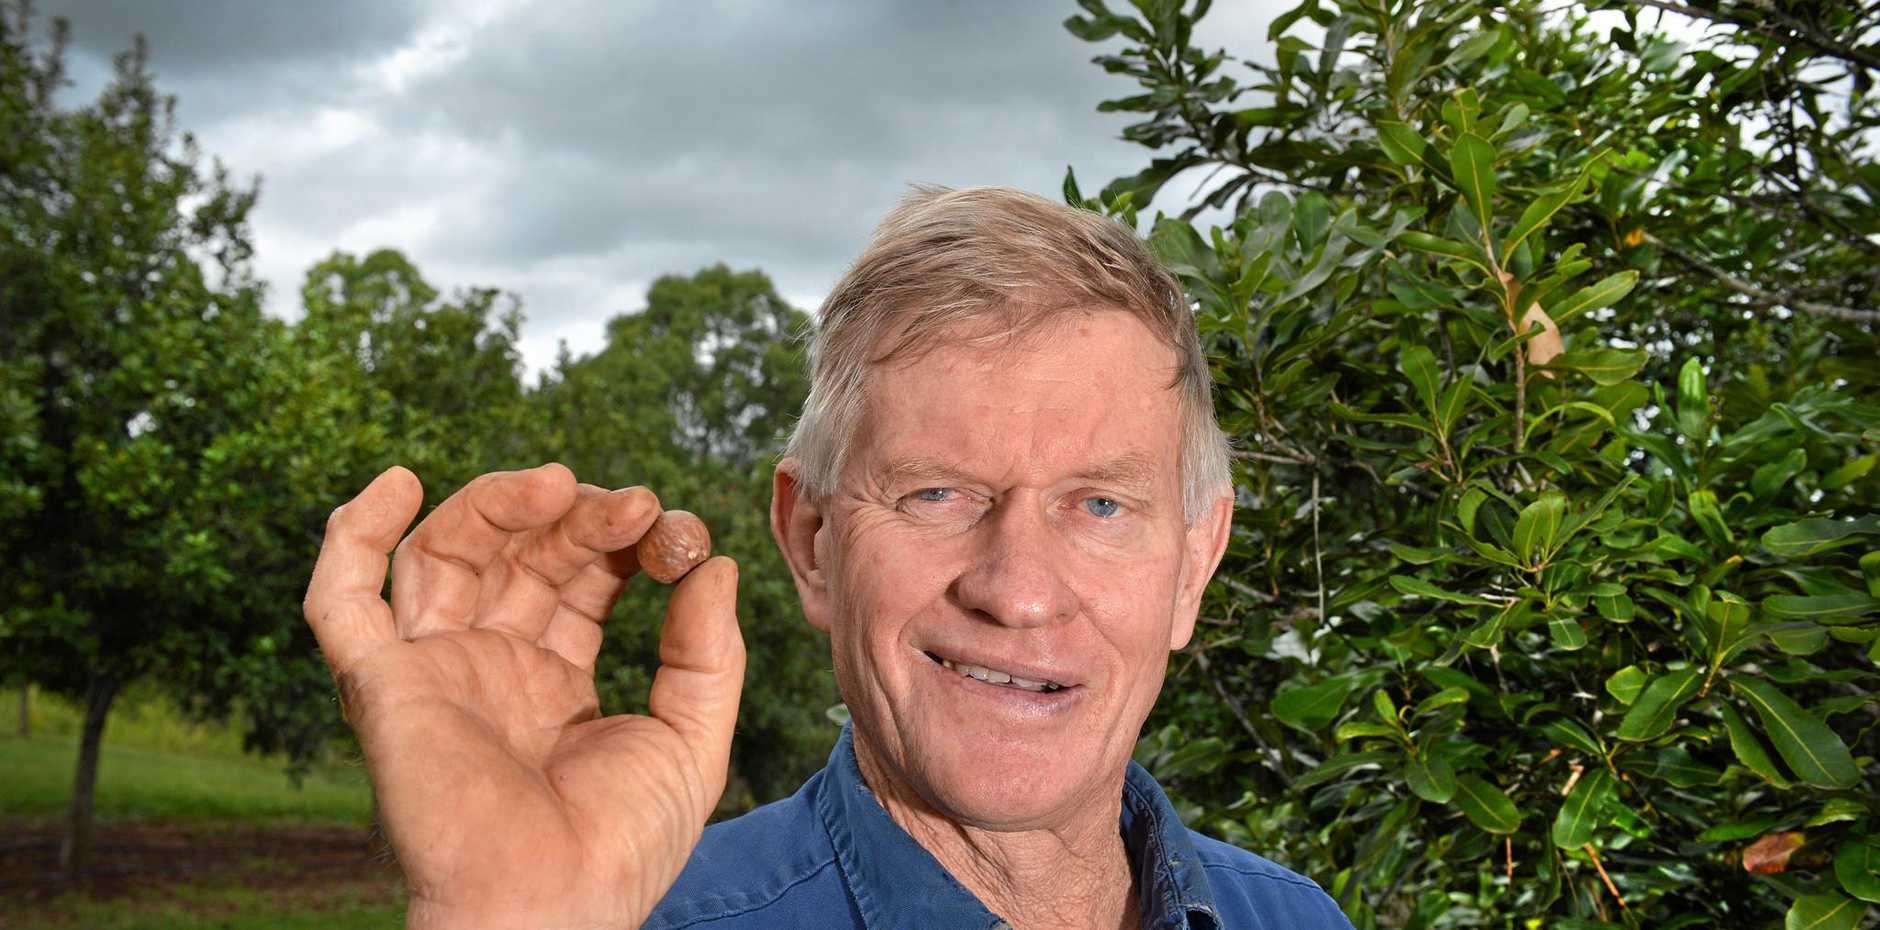 GOOD PRICES: Imbil macadamia grower Ken Ward says a tough season has been balanced by good prices for the Gympie region's most famous bush tucker export.